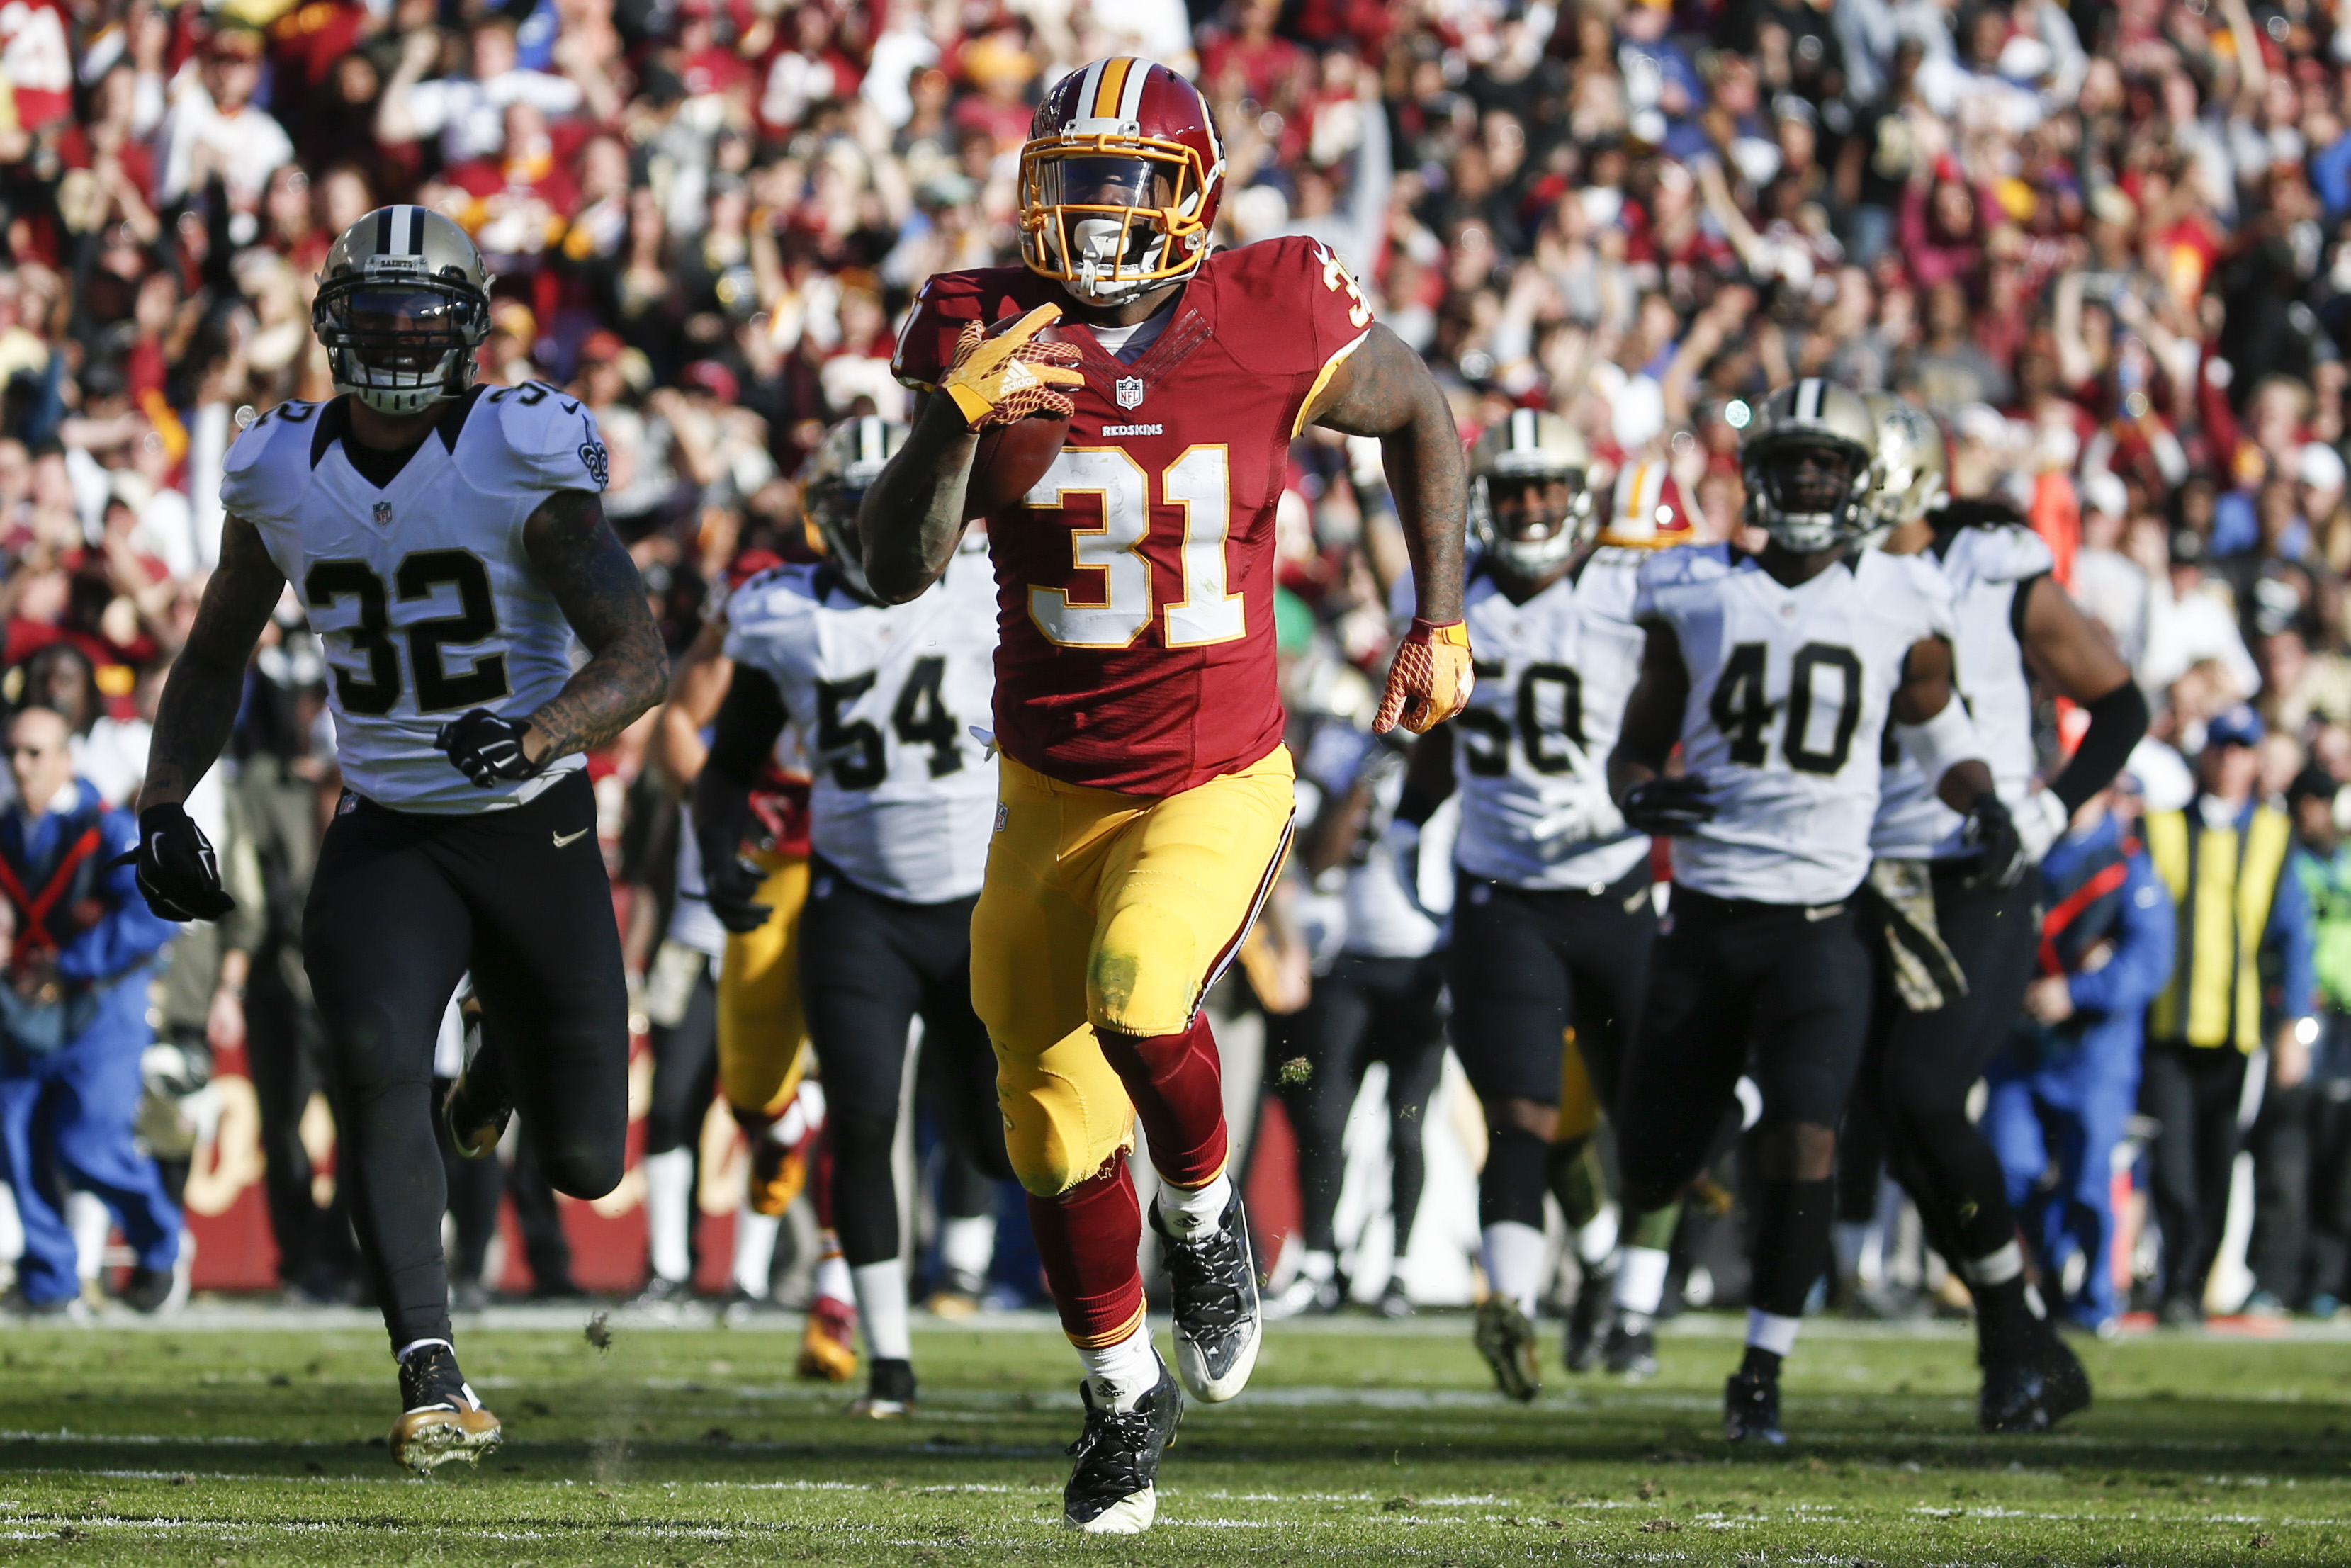 Column: This Redskins win is a signal of change